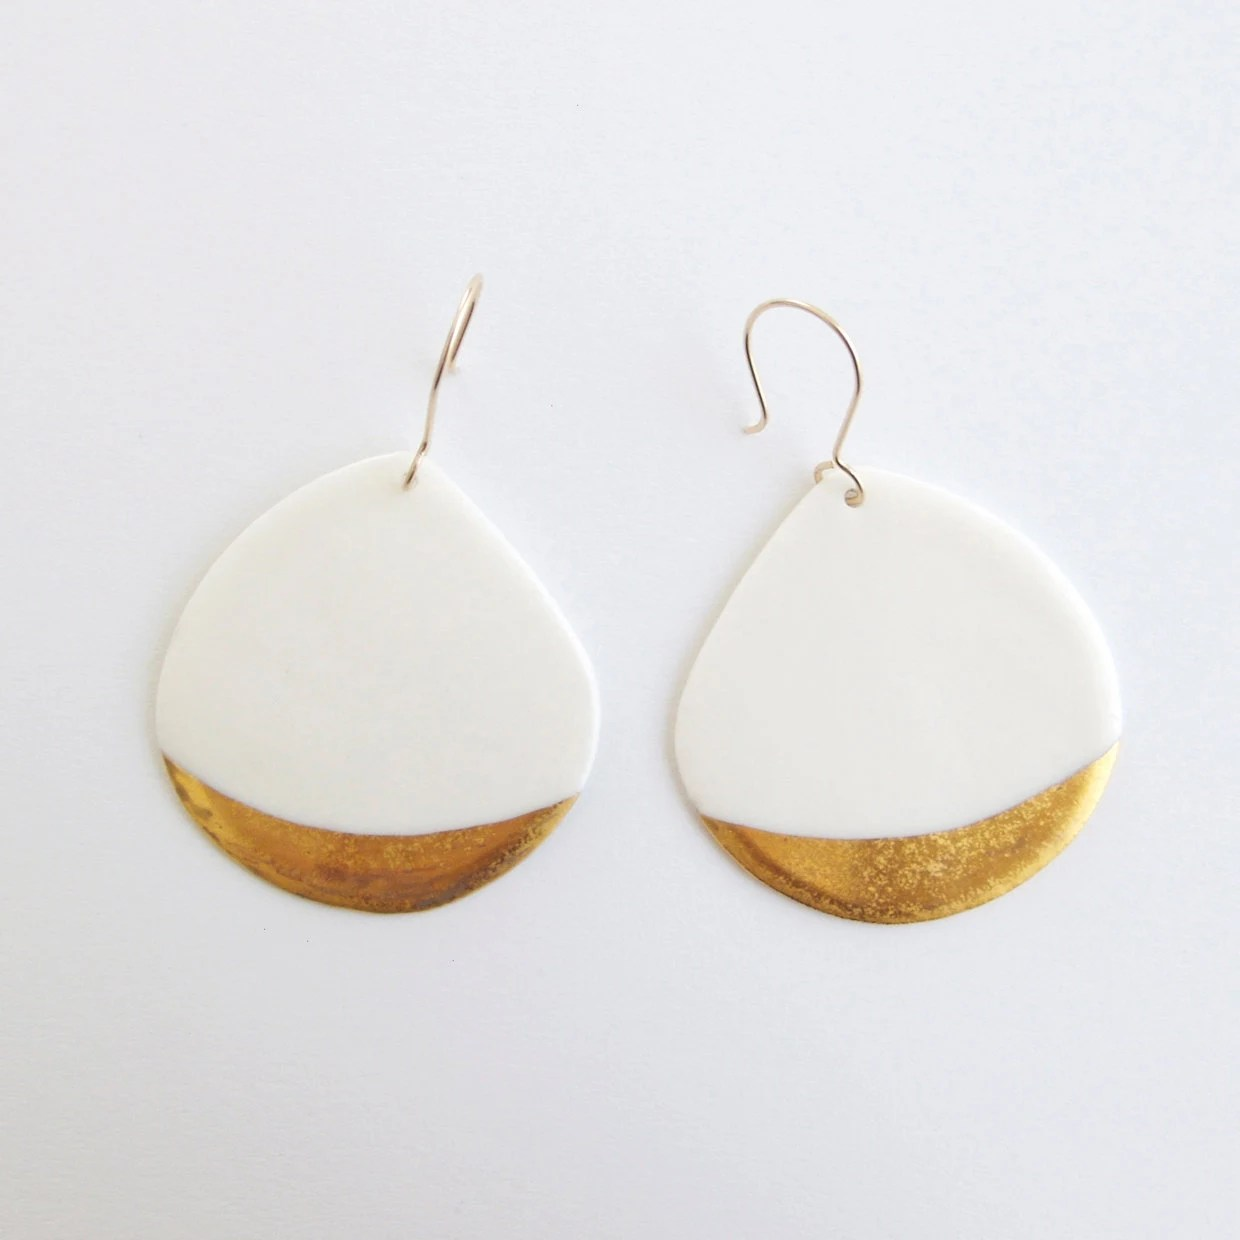 A n a ï s - Ceramic jewellery - White Porcelain earrings & gold patterns - Gold filled earwires - Telline Collection - byloumi